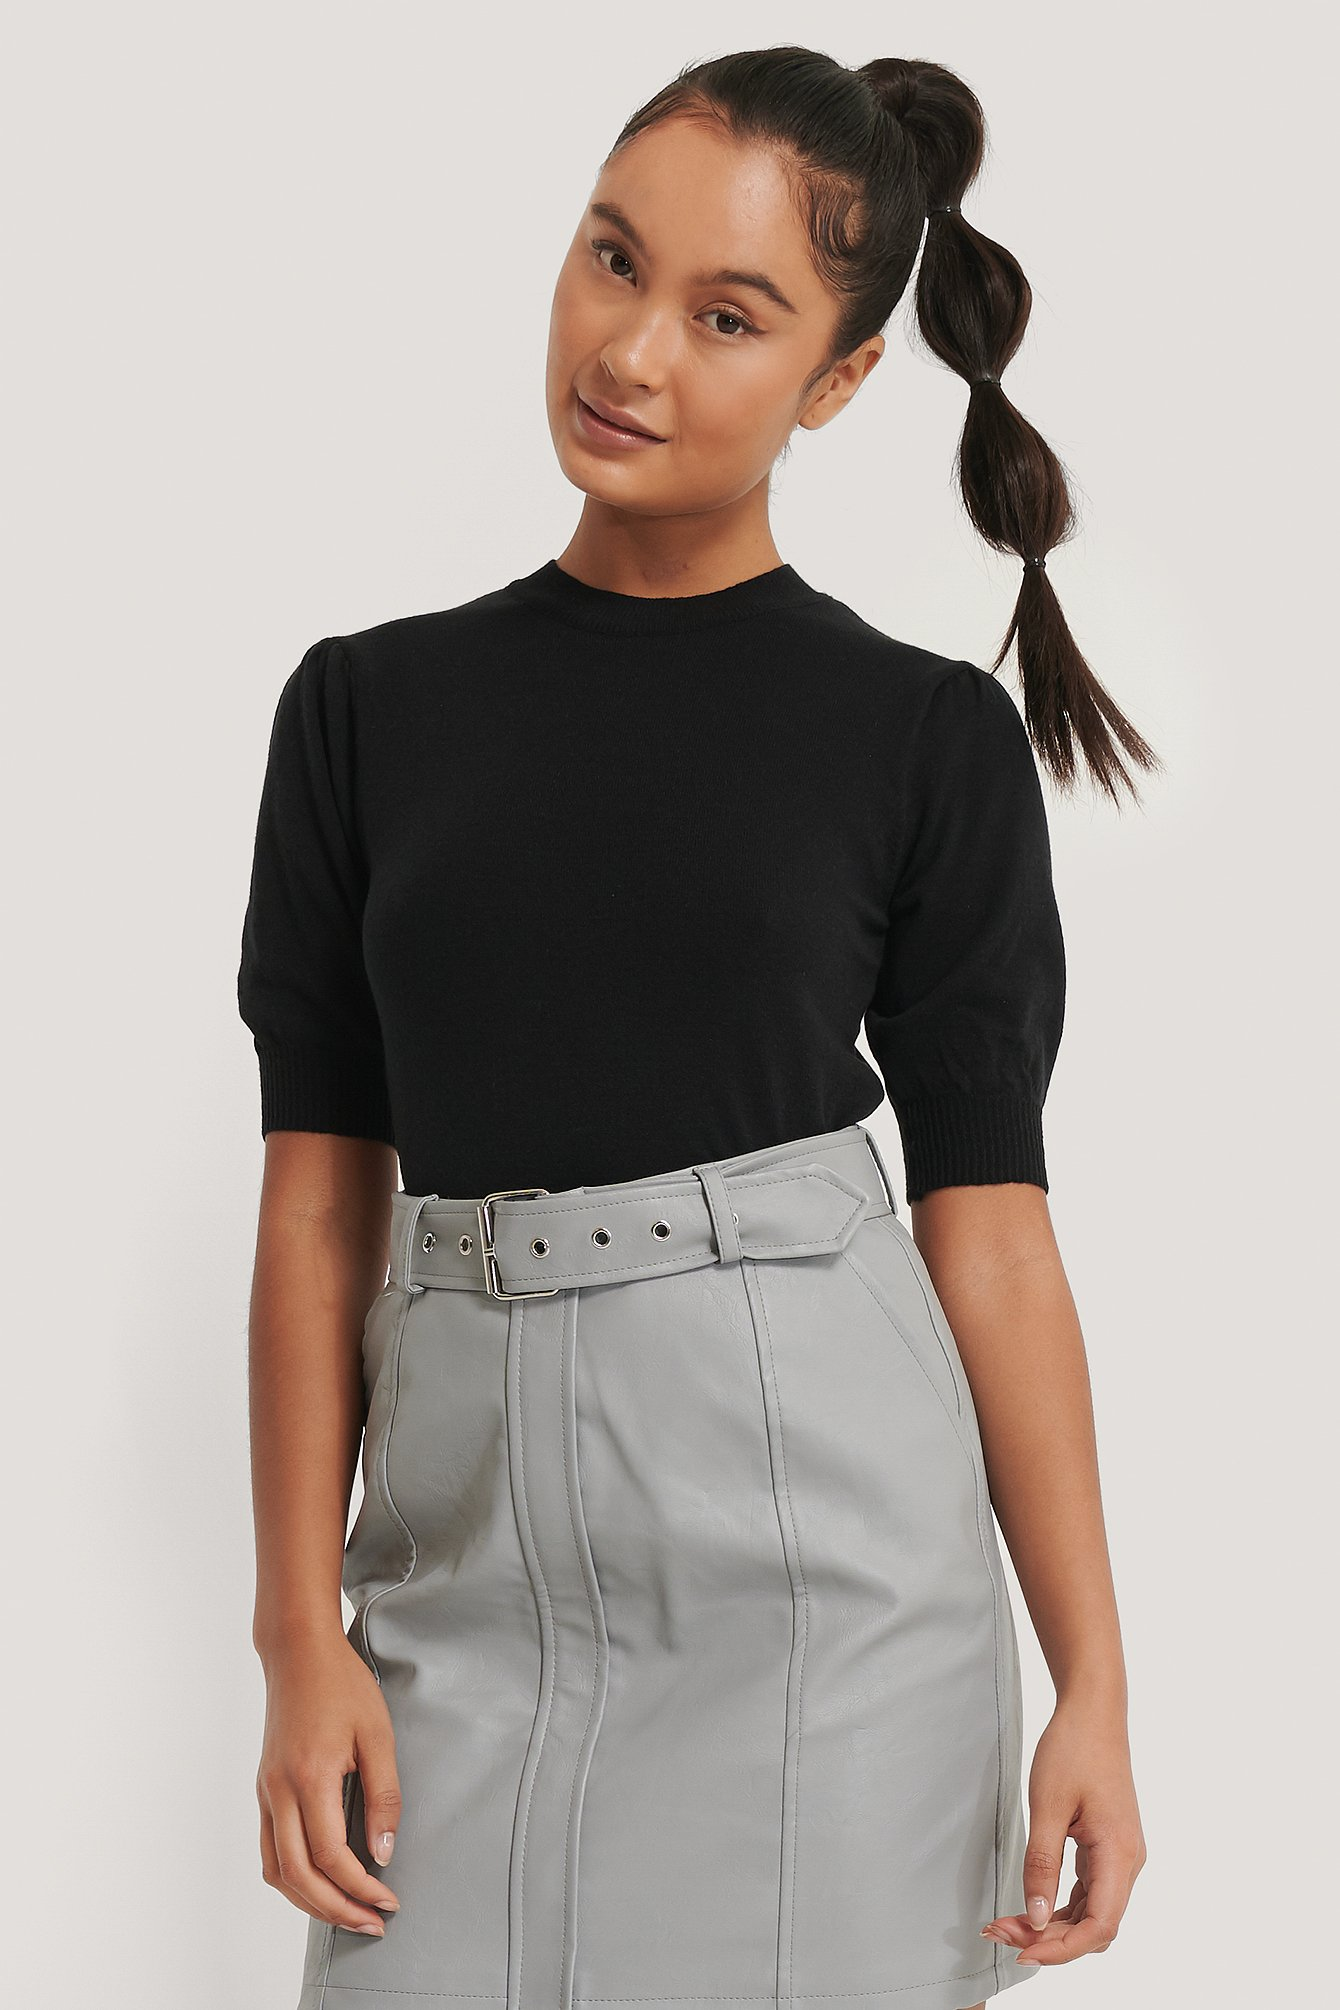 Black Short Sleeve Knitted Top